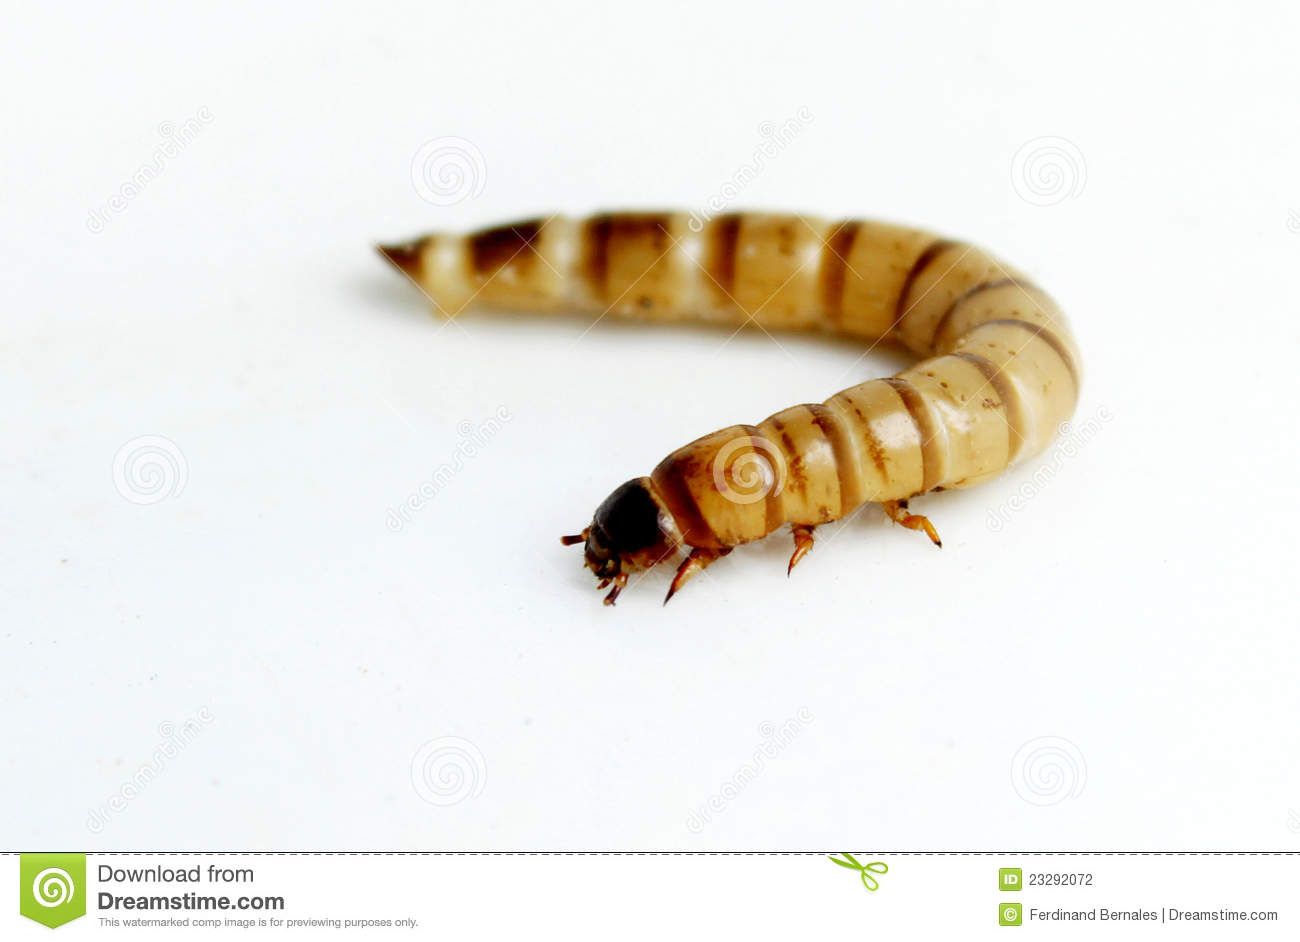 Superworm or Zophobas are one of the large species of worms which are ...